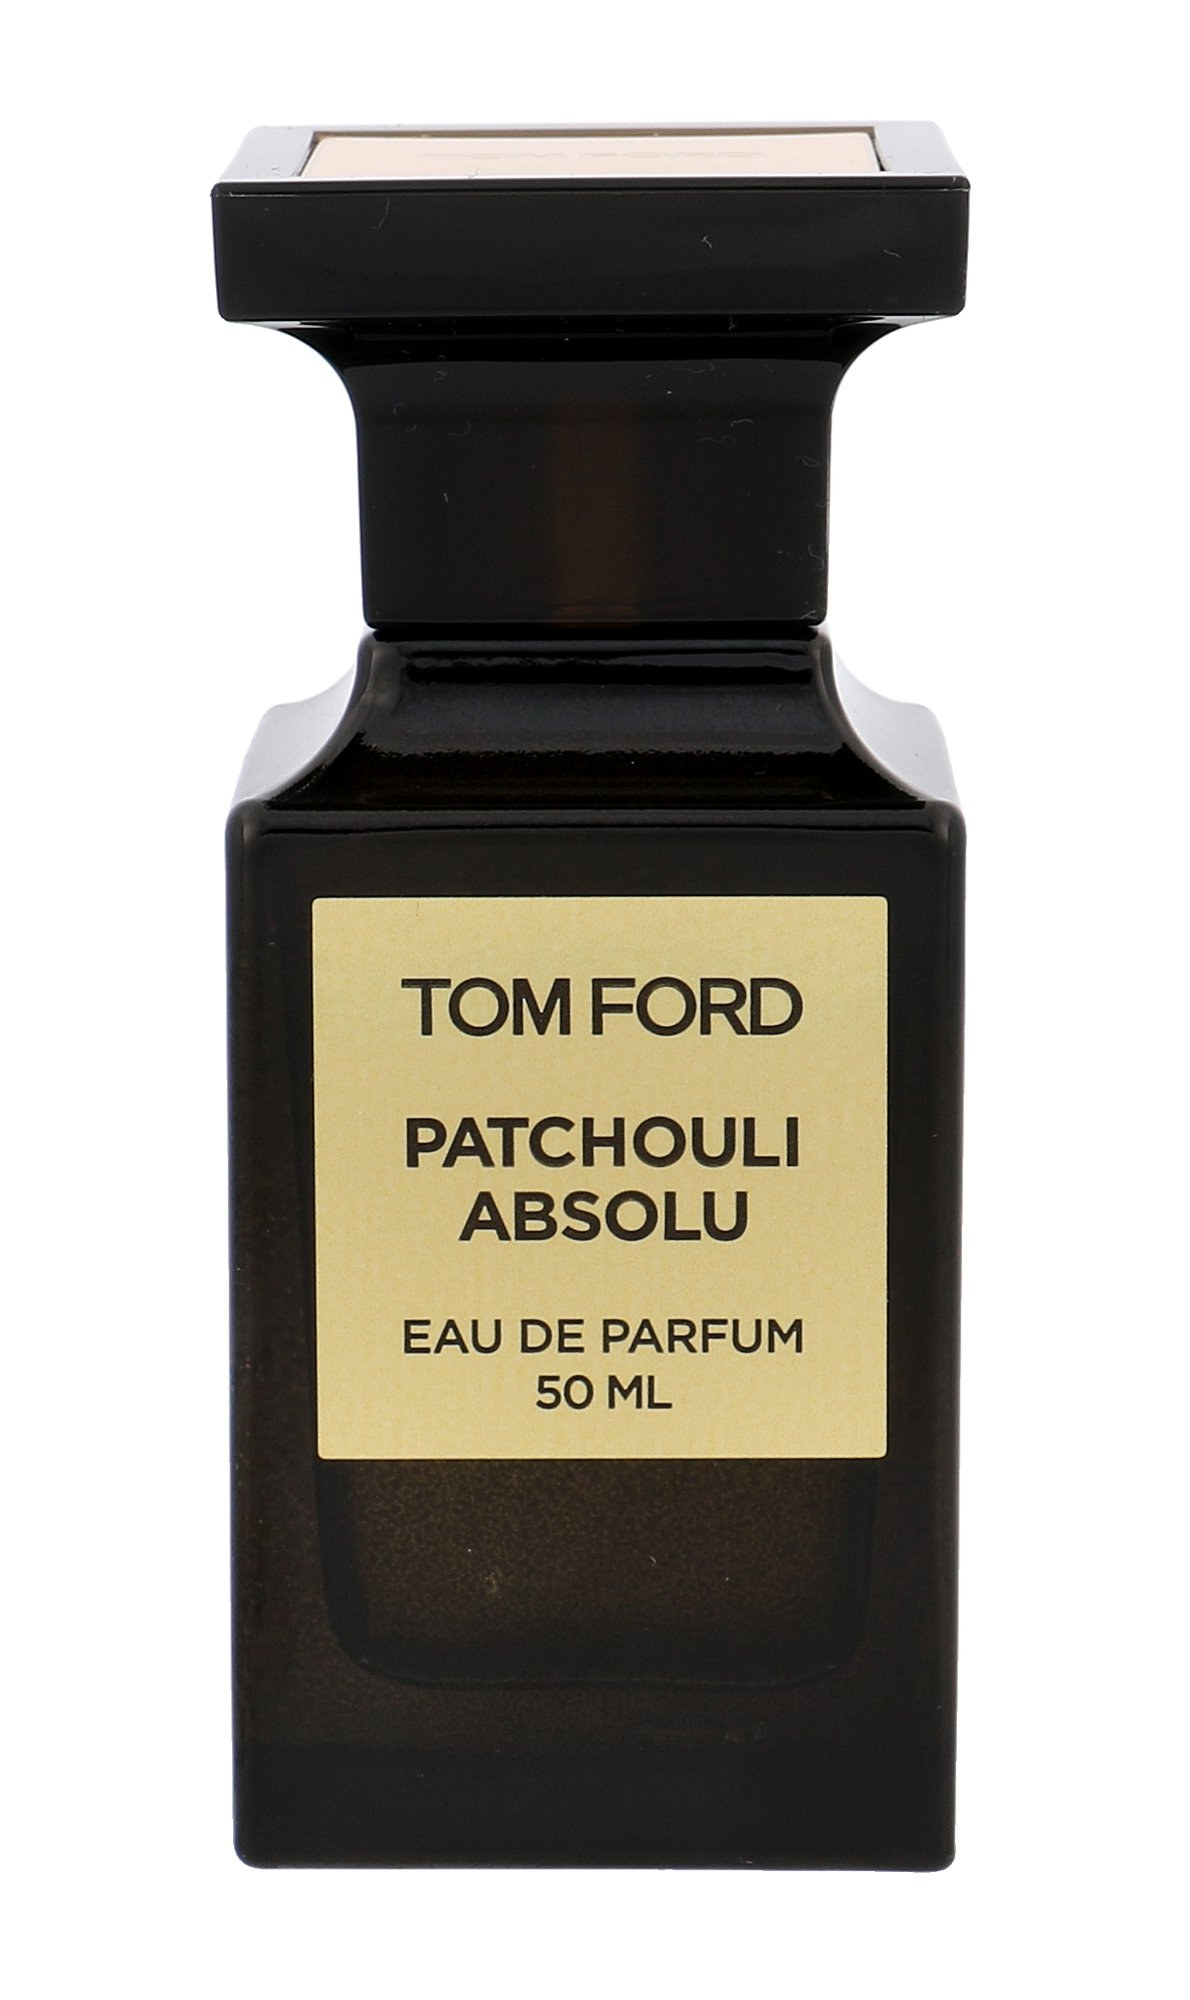 TOM FORD Patchouli Absolu, edp 100ml